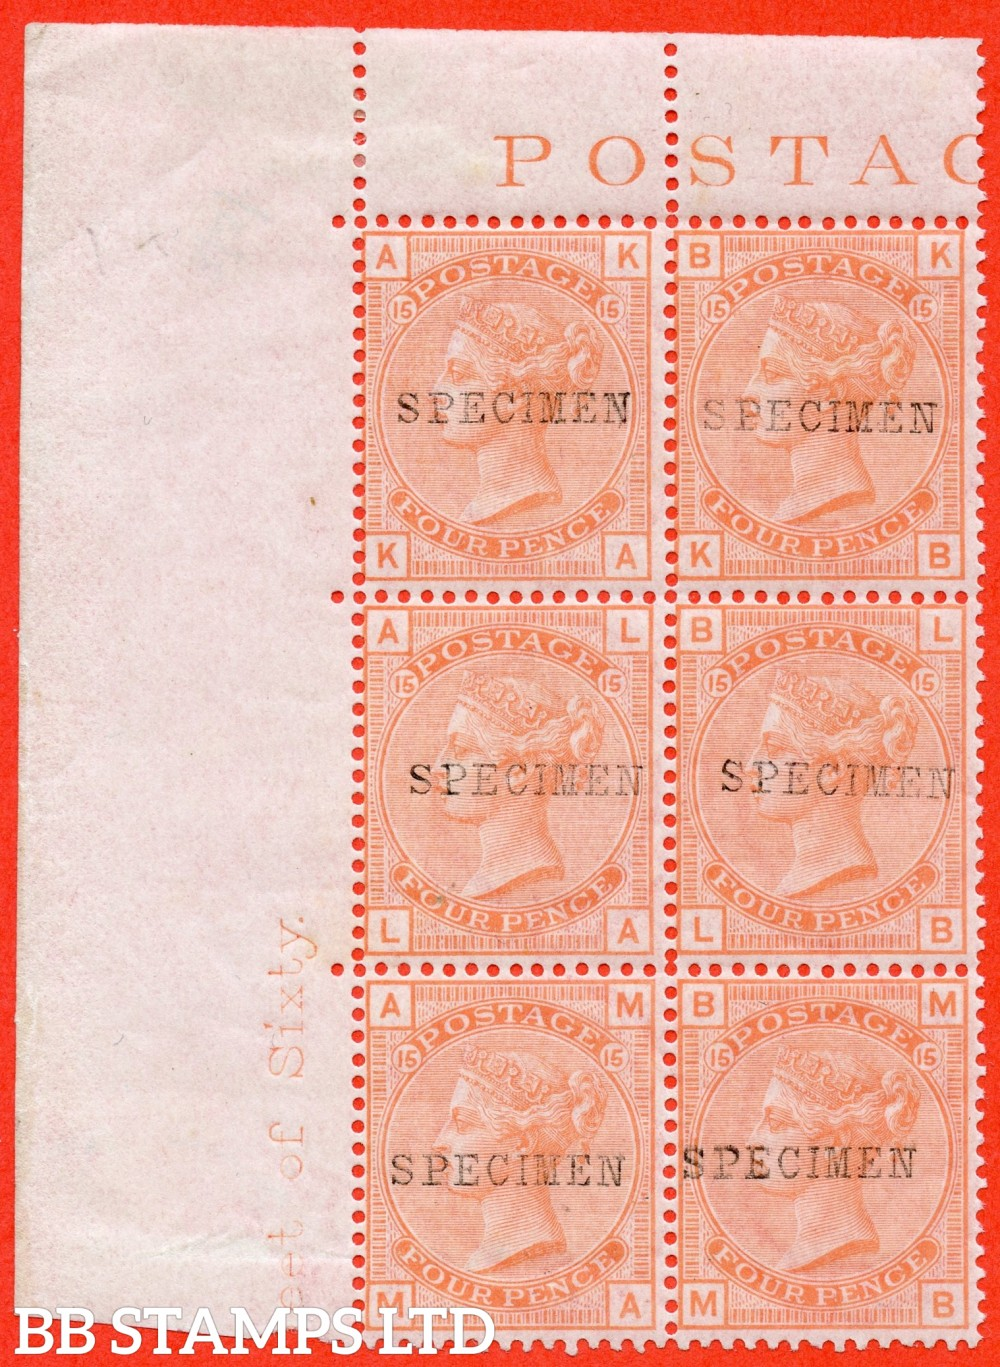 "SG. 152 s. J62 t. "" KA KB LA LB MA MB "". 4d vermilion plate 15. A superb UNMOUNTED MINT top left hand corner marginal inscriptional block of 6 overprinted SPECIMEN type 9."